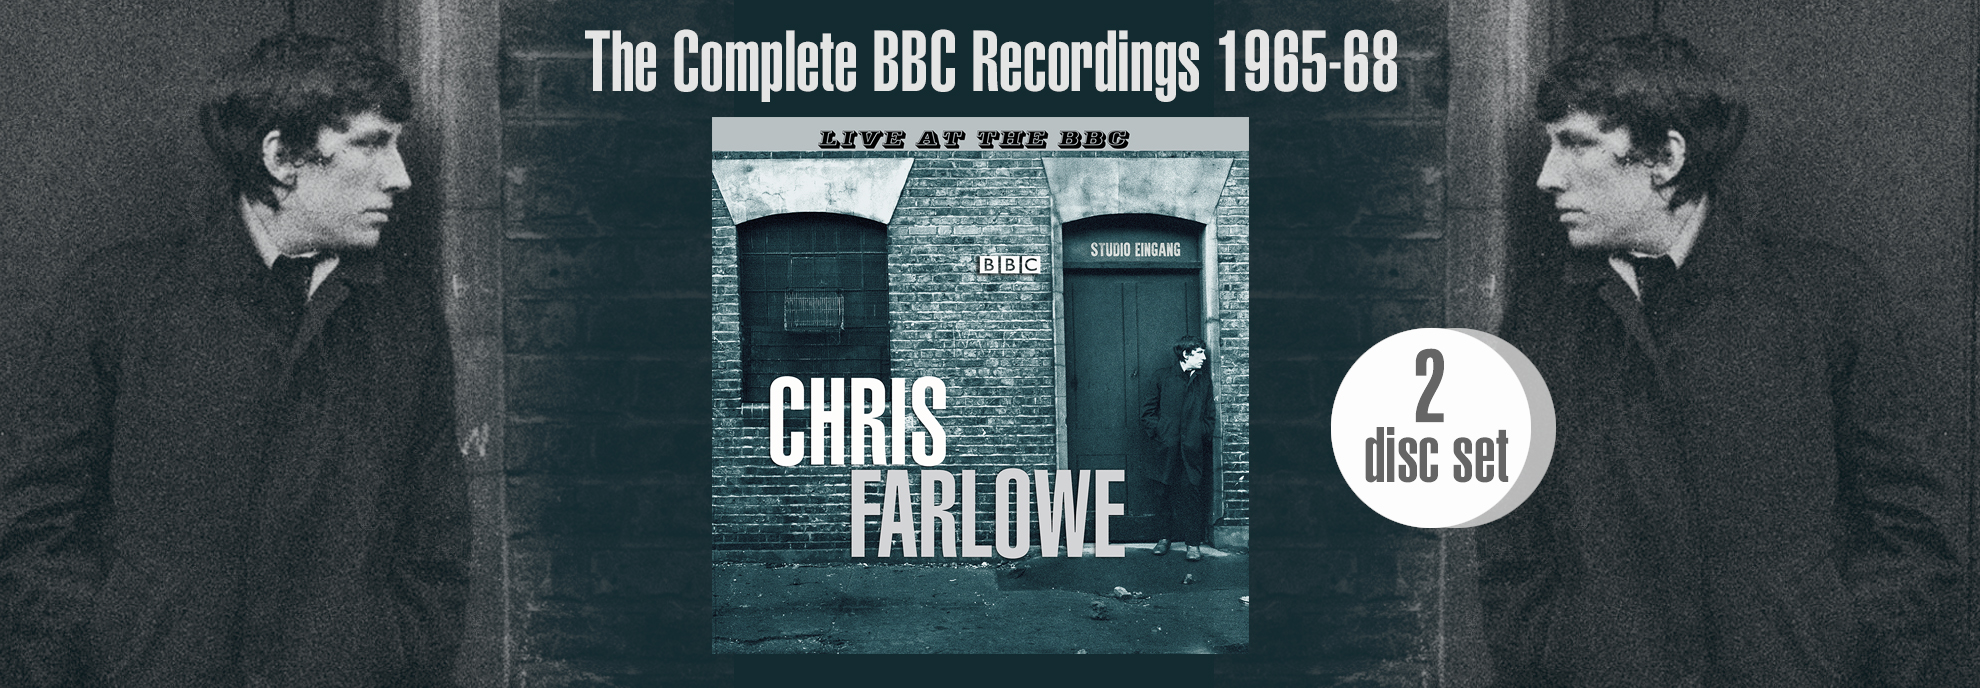 Chis-Farlowe-LIve-at-the-BBC-banner